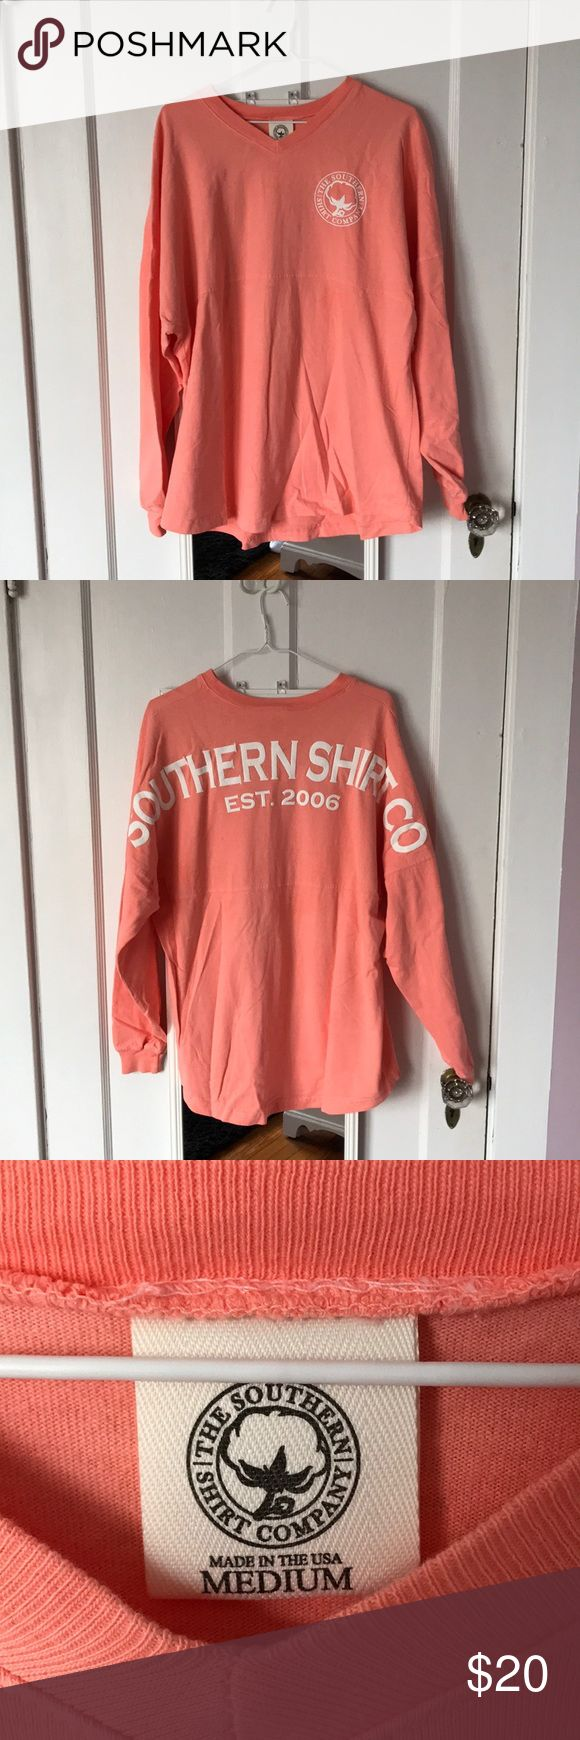 The Southern Shirt Company Jersey Pullover Peach Medium The Southern Shirt Company Jersey Pullover, great condition!! The Southern Shirt Company Tops Tees - Long Sleeve